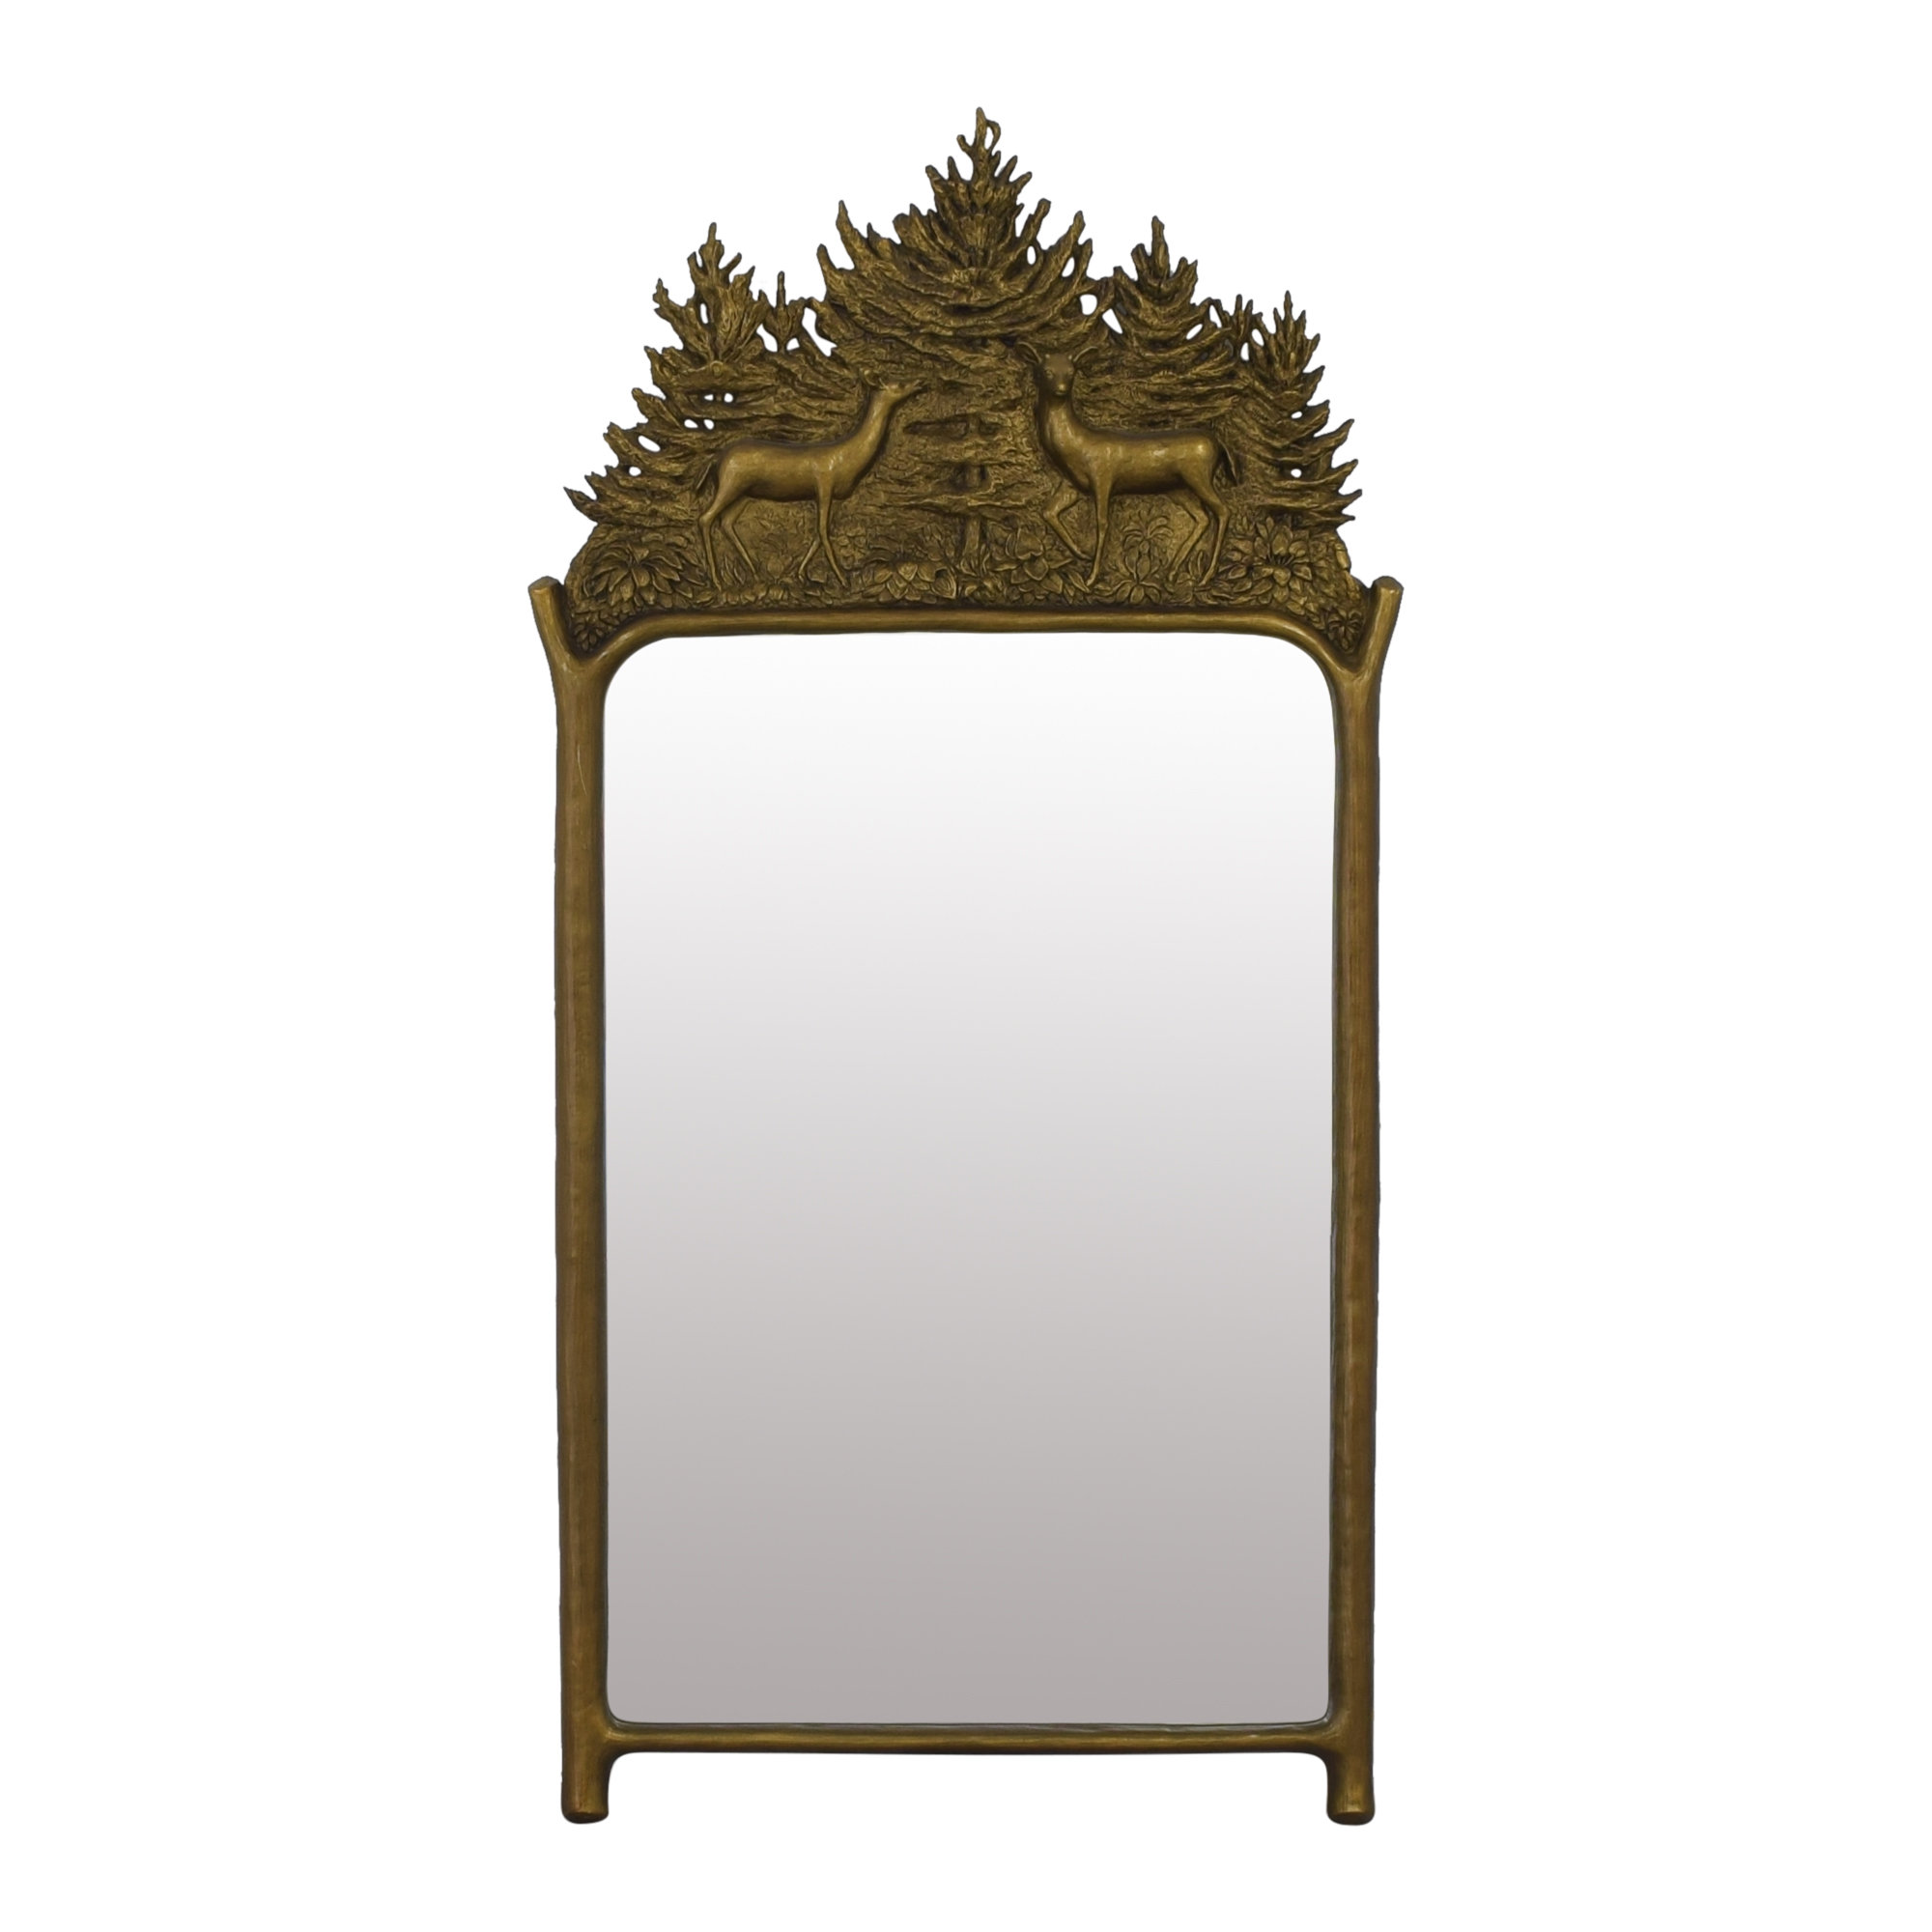 buy Carvers' Guild Traditional Mirror Carvers' Guild